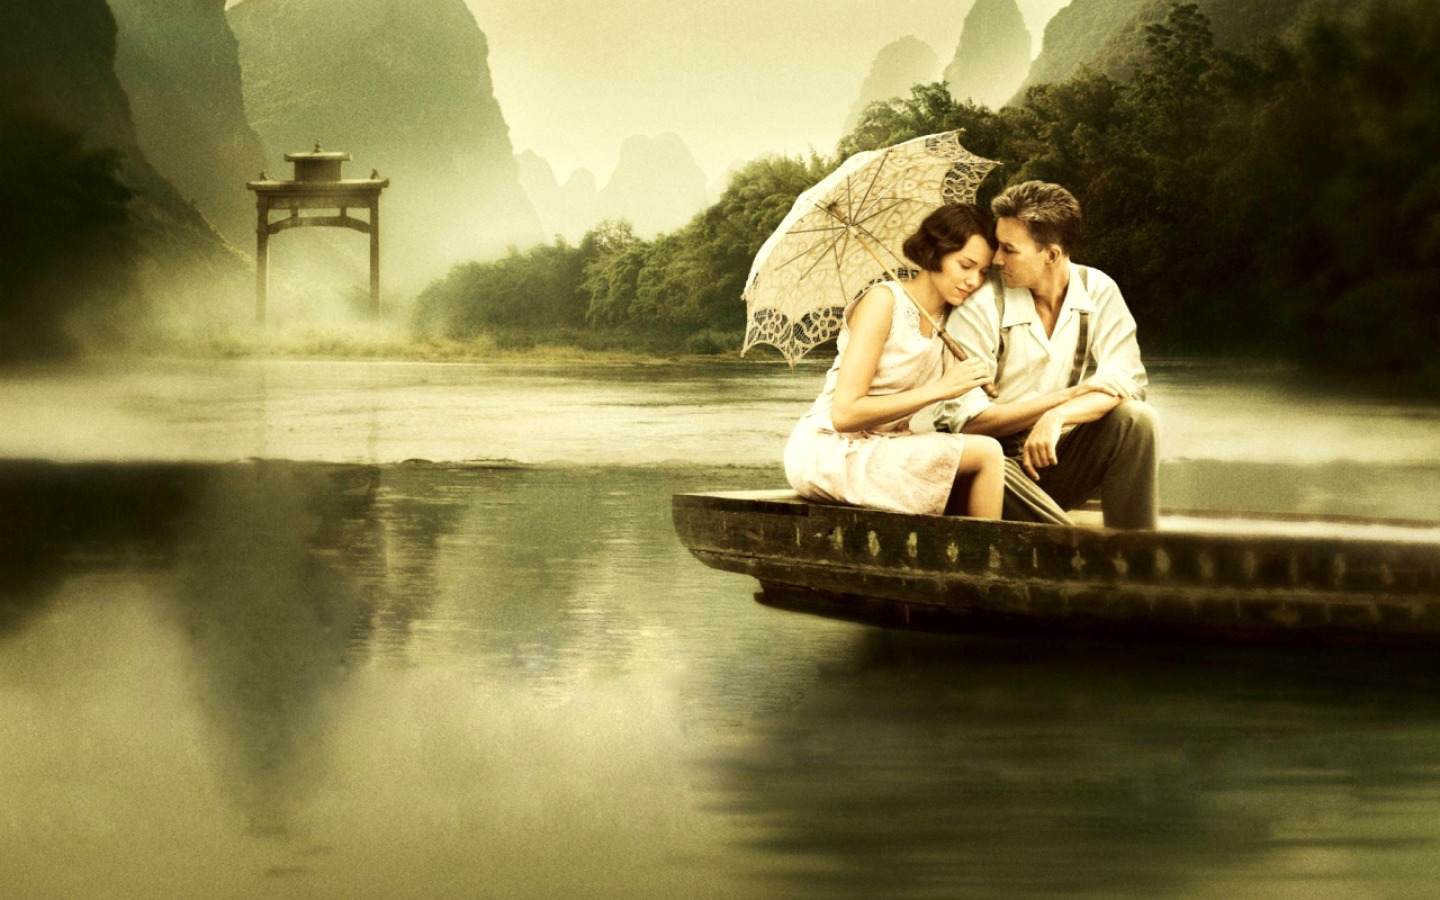 Free Download Love Images Couple Hd Wallpaper And Background